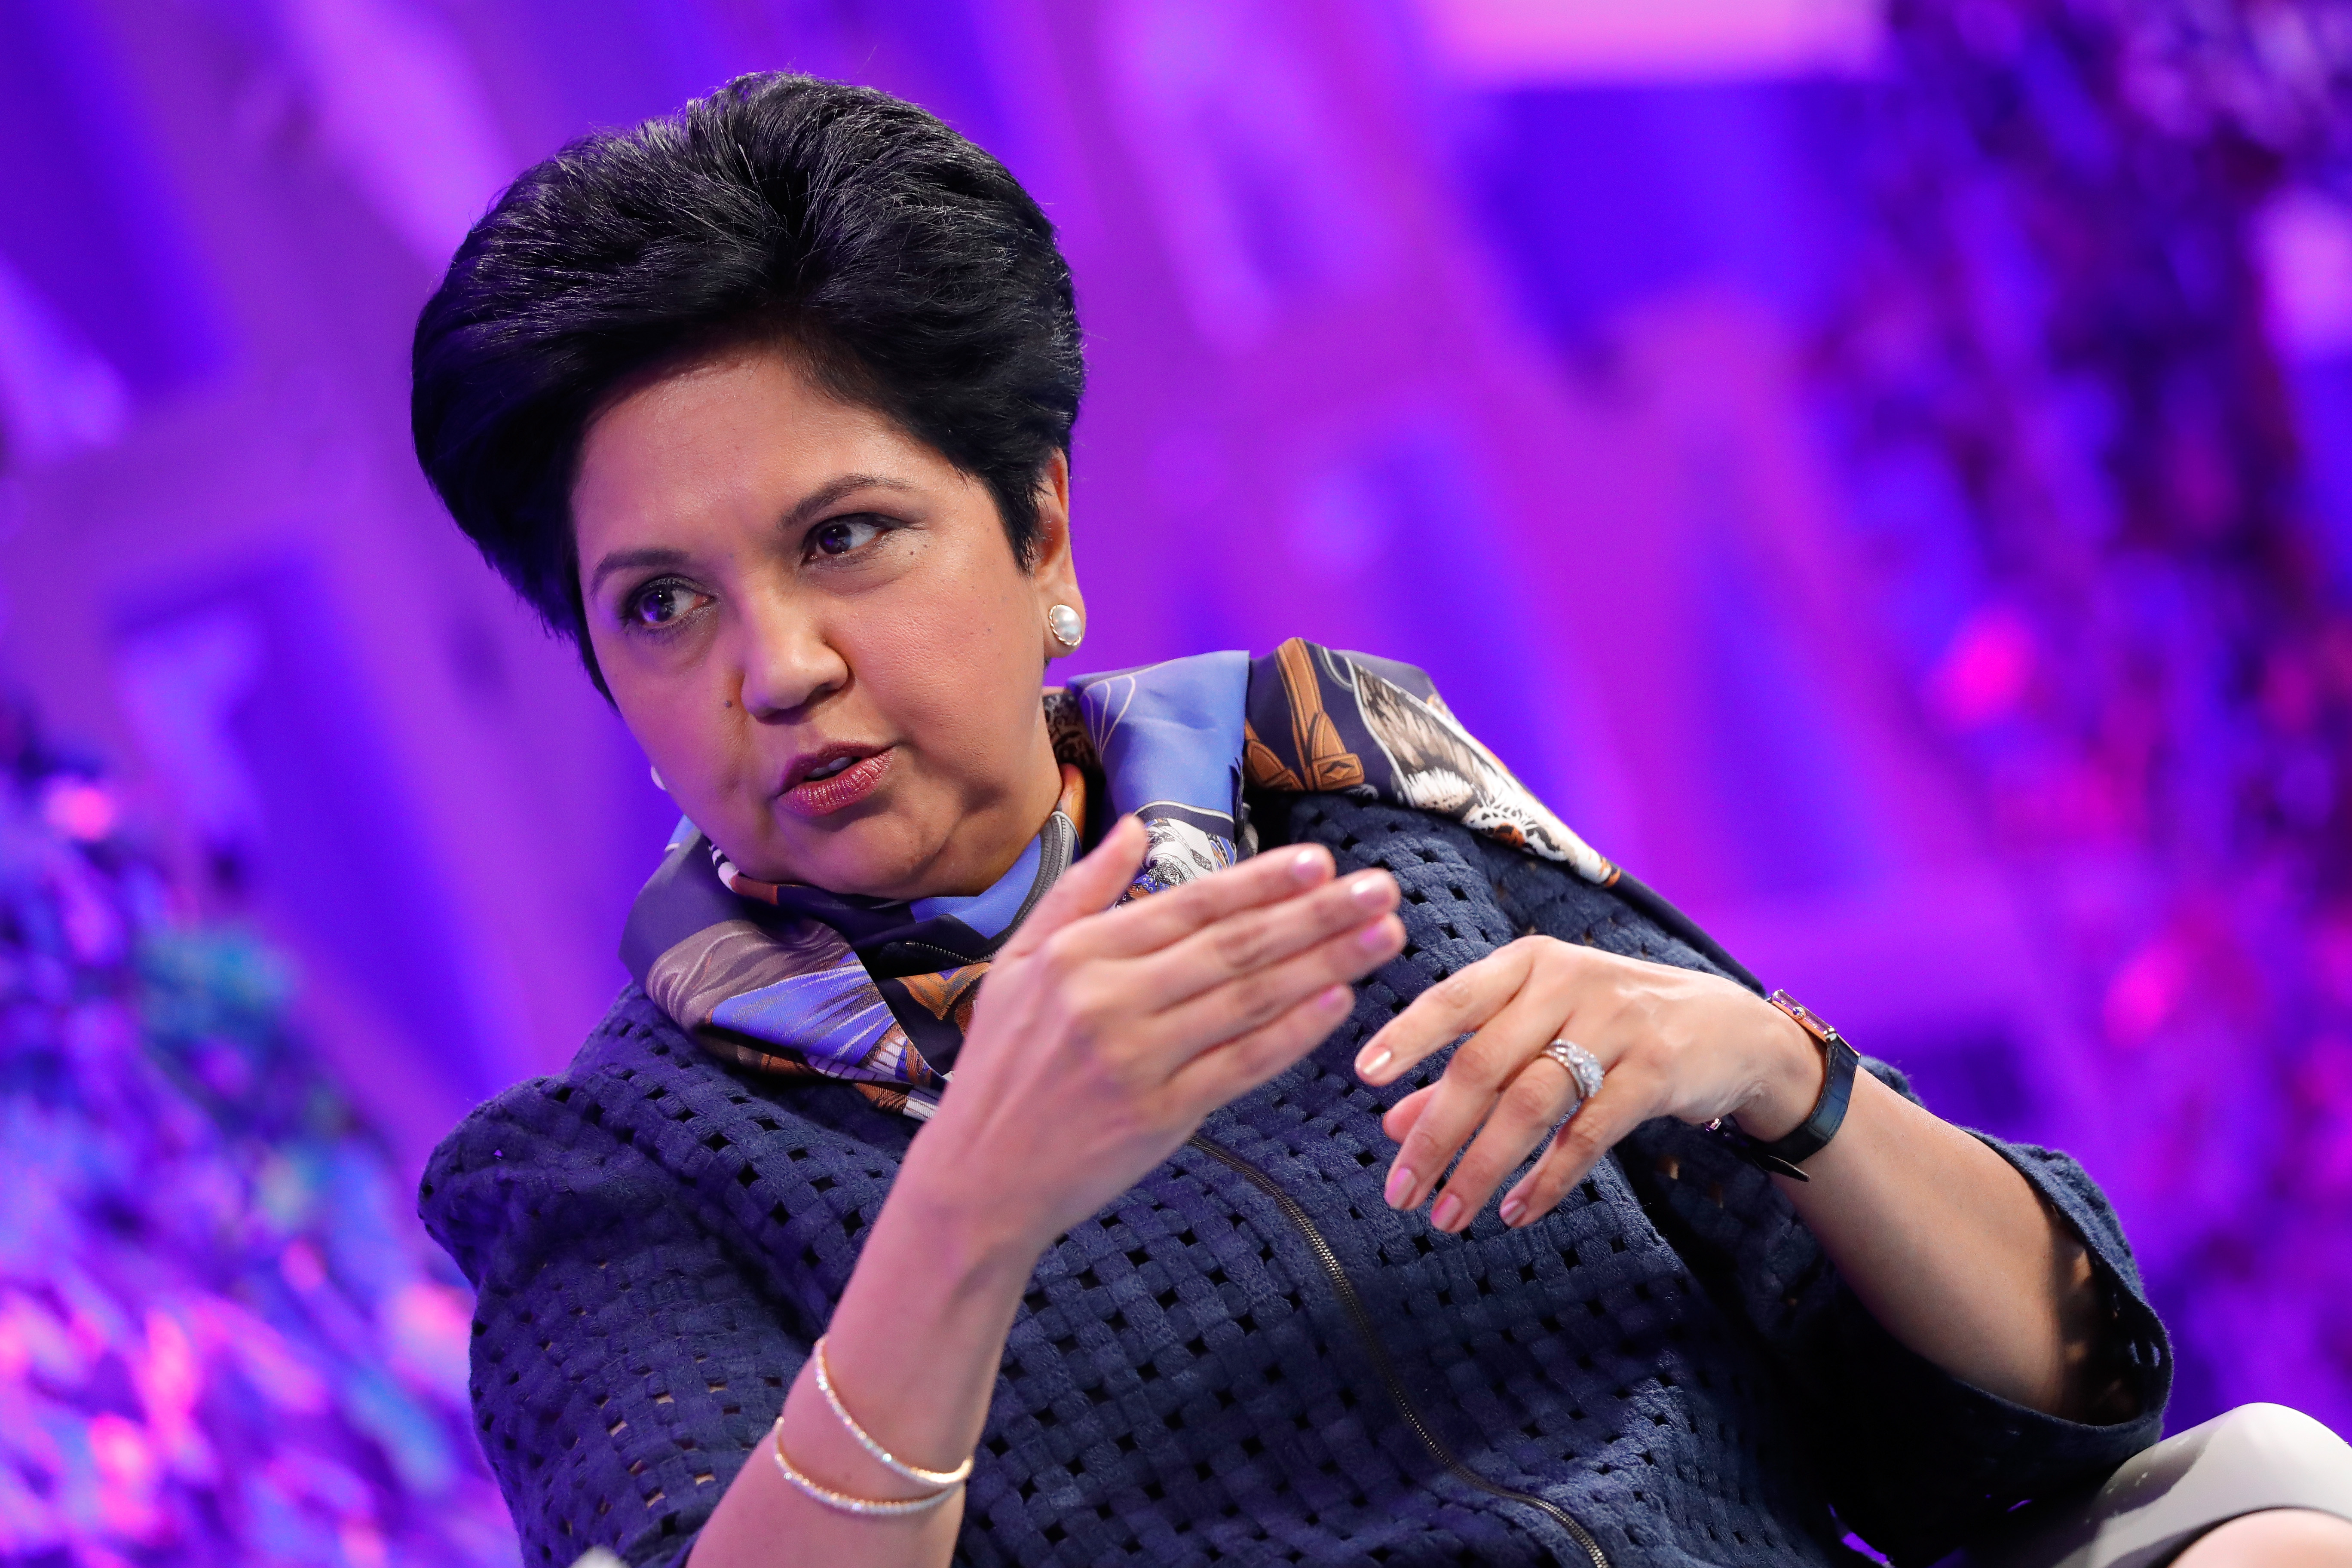 Former Pepsi Chairman and CEO Indra Nooyi spoke at Fortune's MPW International Summit on Monday about her new book.